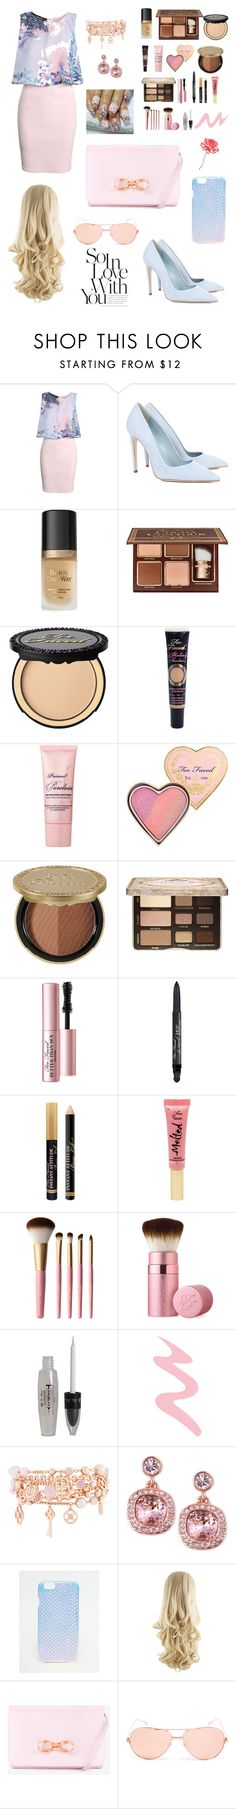 """""""Pretty Pastels"""" by vavavoom02 ❤ liked on Polyvore featuring Boohoo, Dee Keller, Too Faced Cosmetics, Henri Bendel, Givenchy, ASOS, Ted Baker, Linda Farrow, Universal Lighting and Decor and women's clothing"""